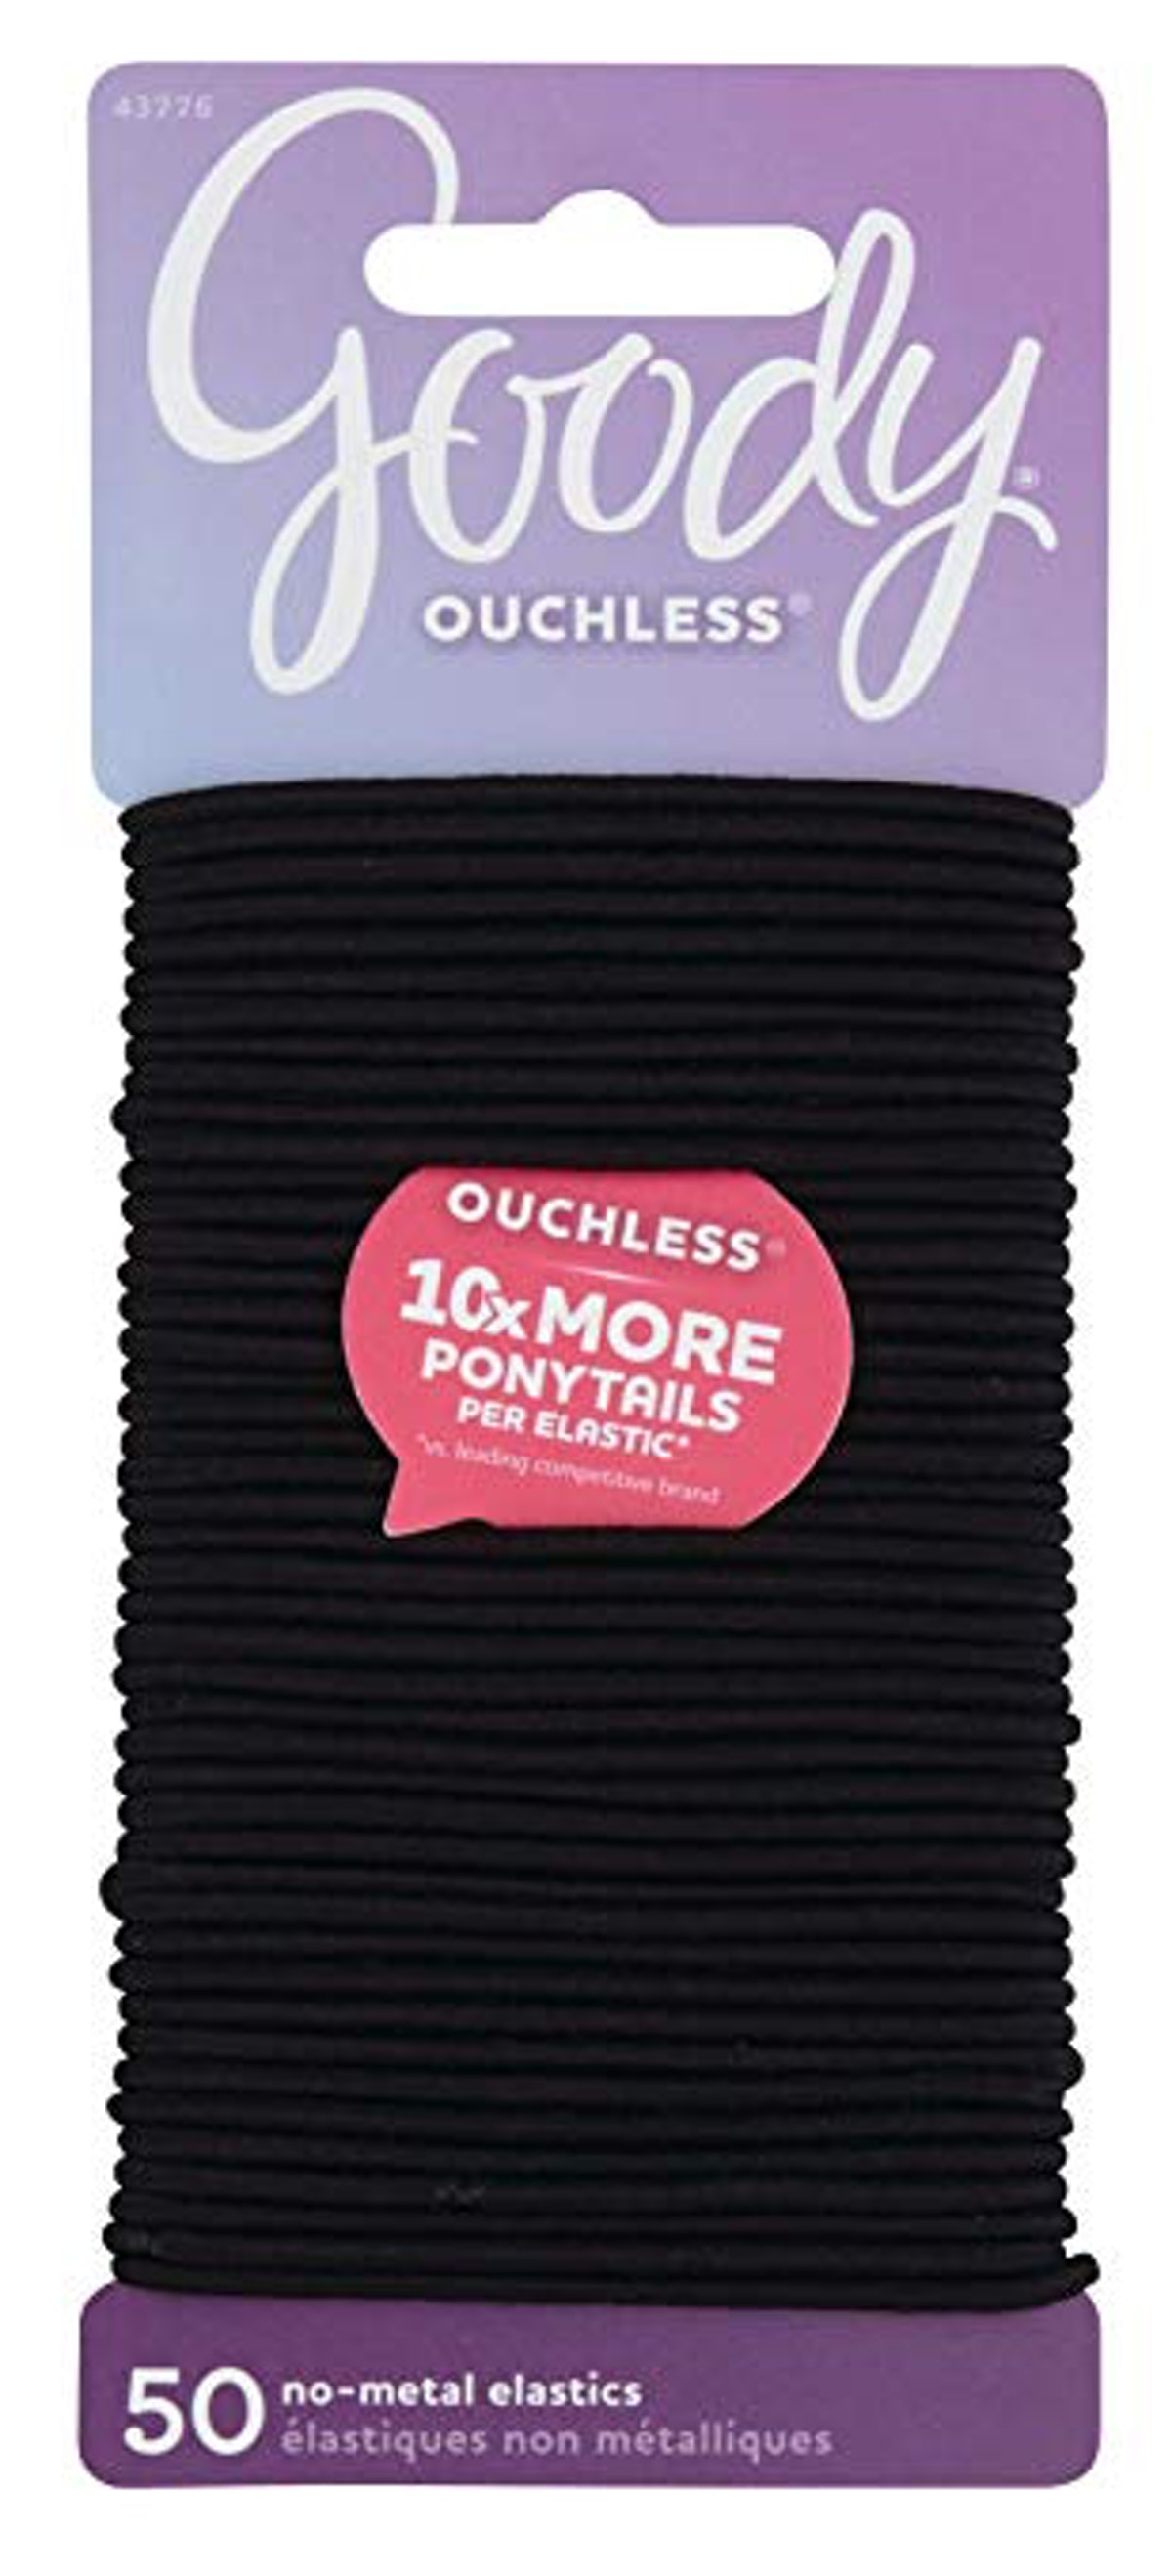 Goody Ouchless No-Metal Elastics